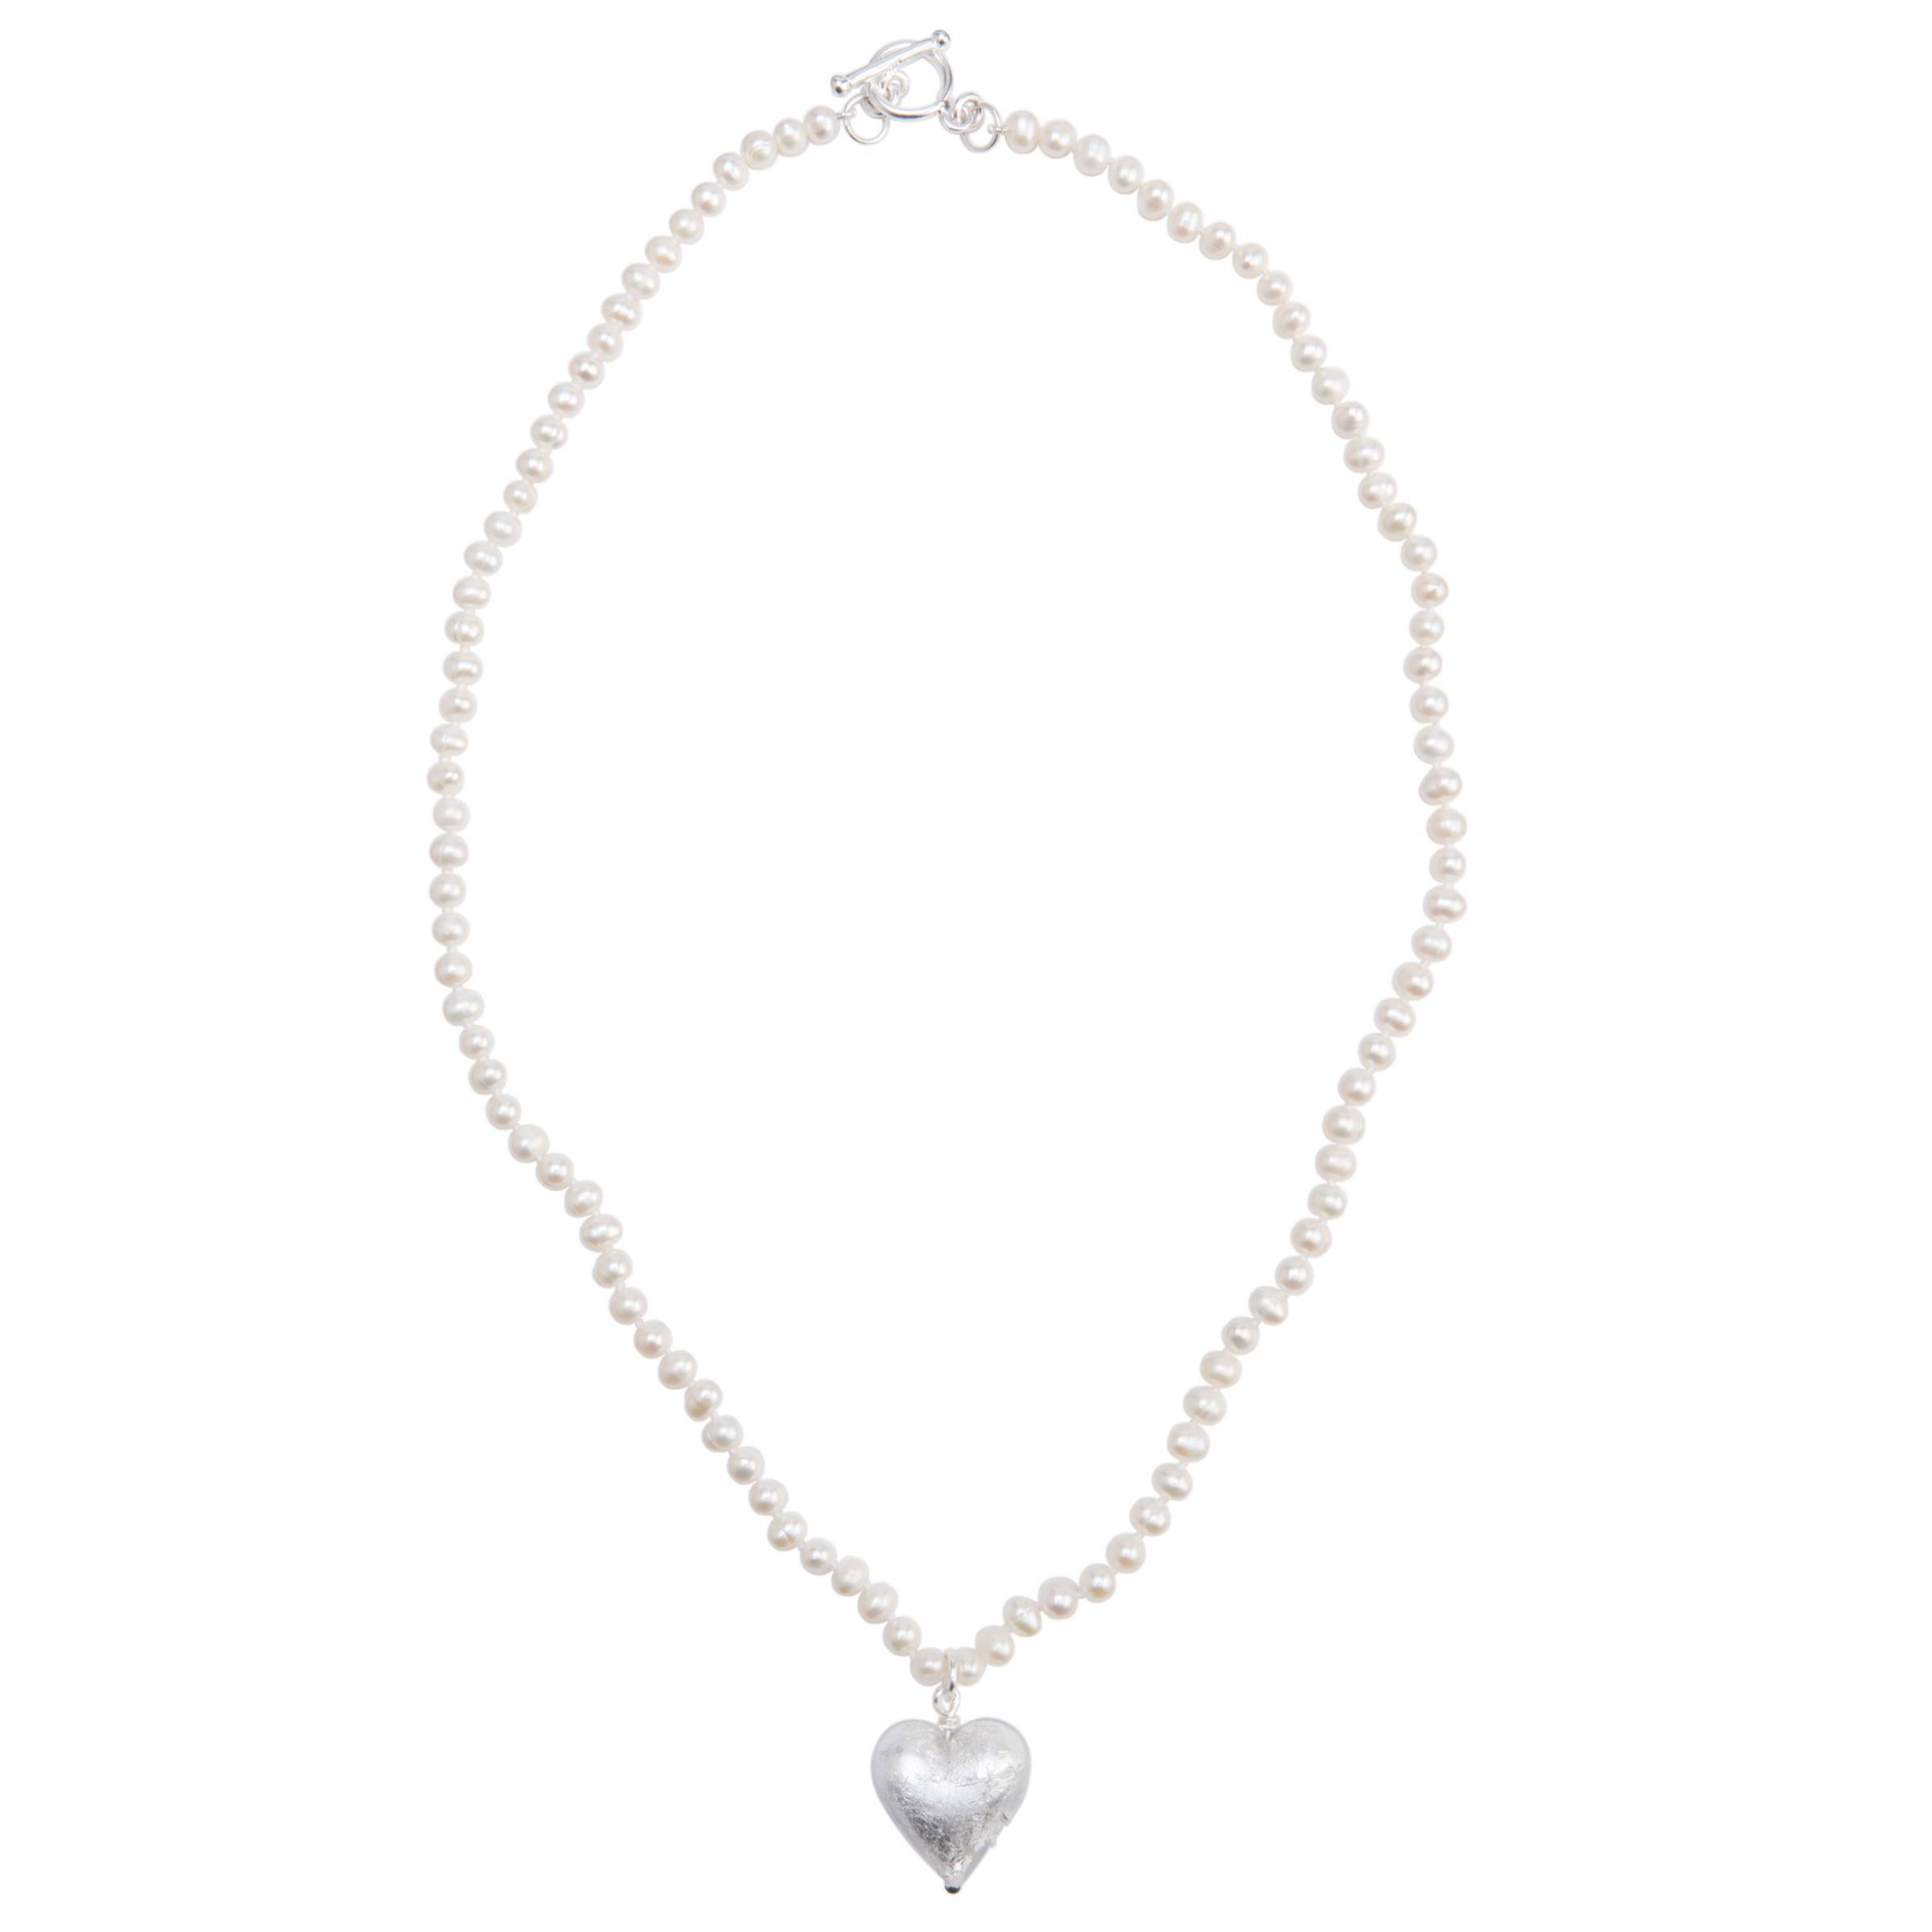 Martick White Pearl with Silver Murano Heart Necklace